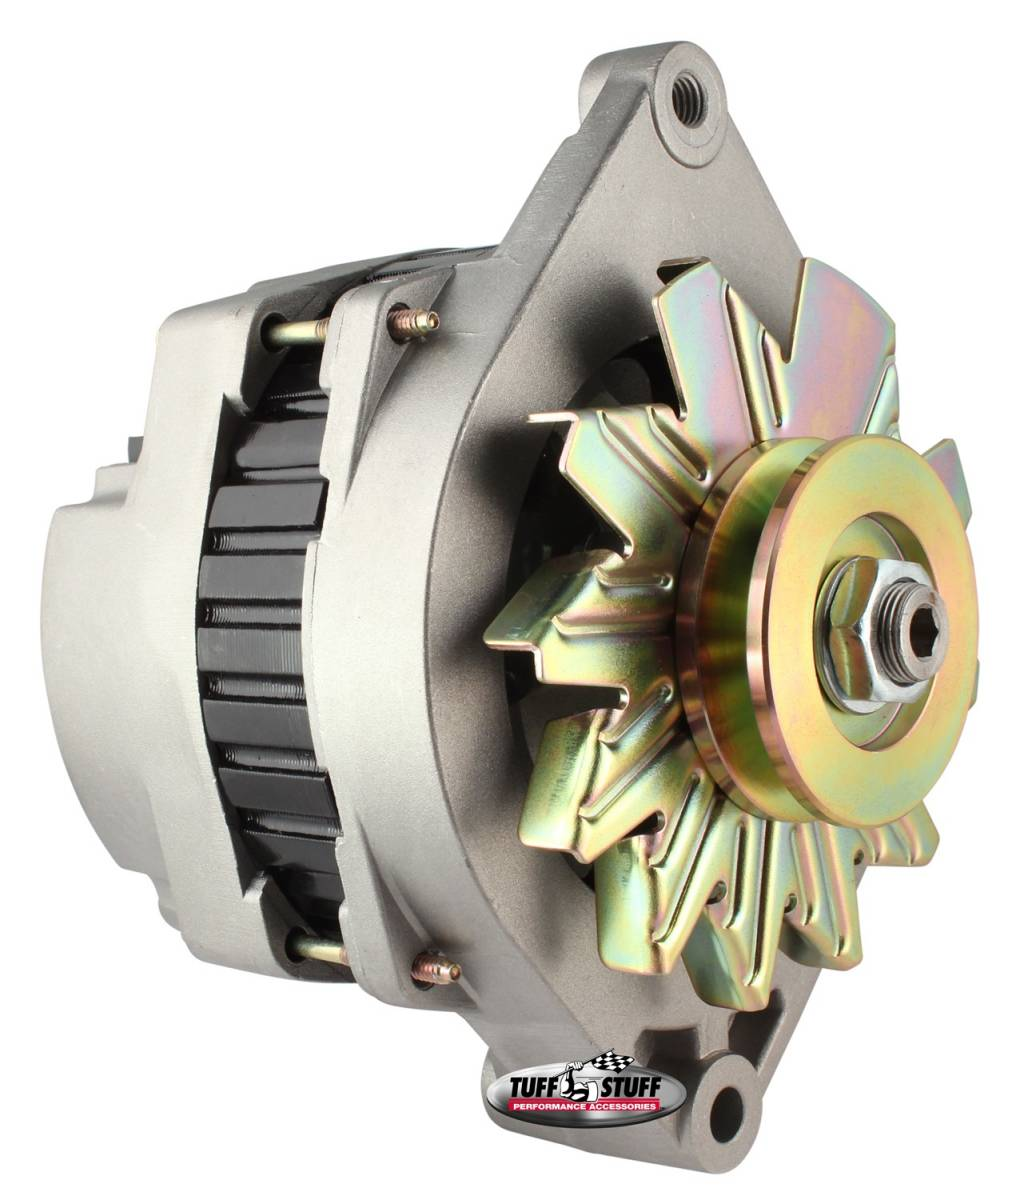 Tuff Stuff Performance - Alternator 170 AMP Incl. Pigtail/OEM Wiring V Groove Pulley Factory Cast PLUS+ 7290NC